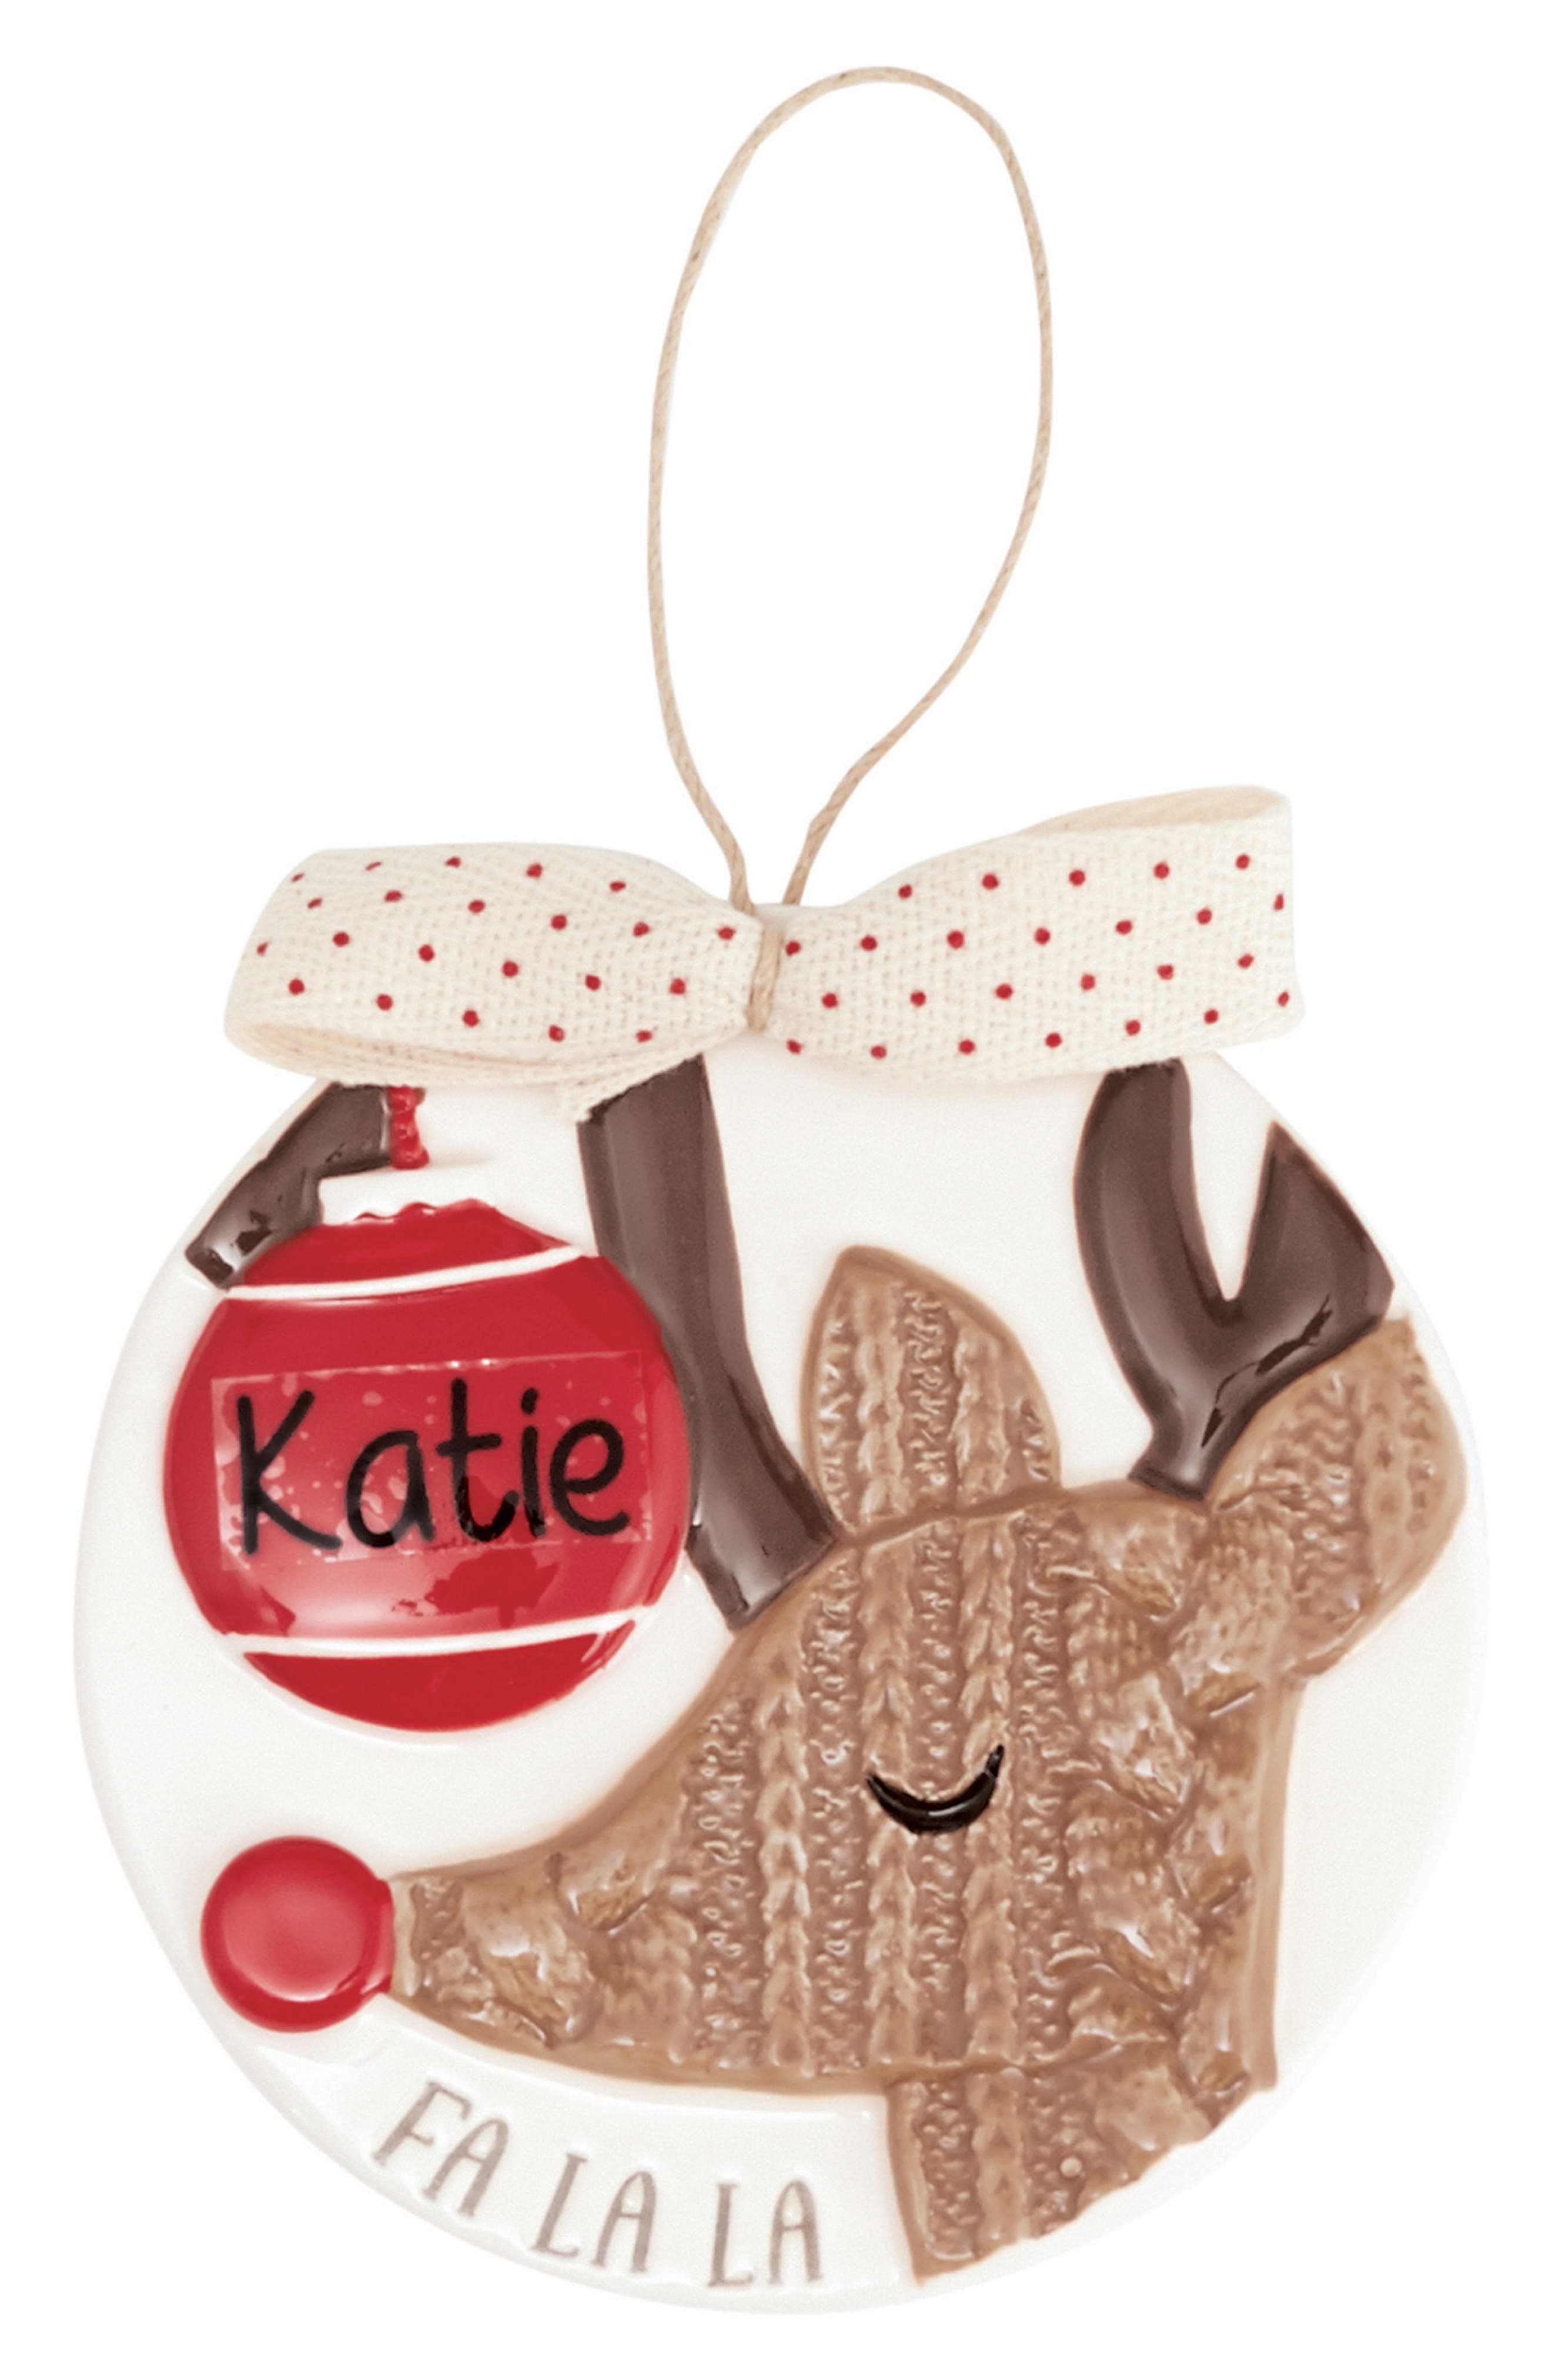 Reindeer Ornament with Personalization Sticker,                             Main thumbnail 1, color,                             White/ Red